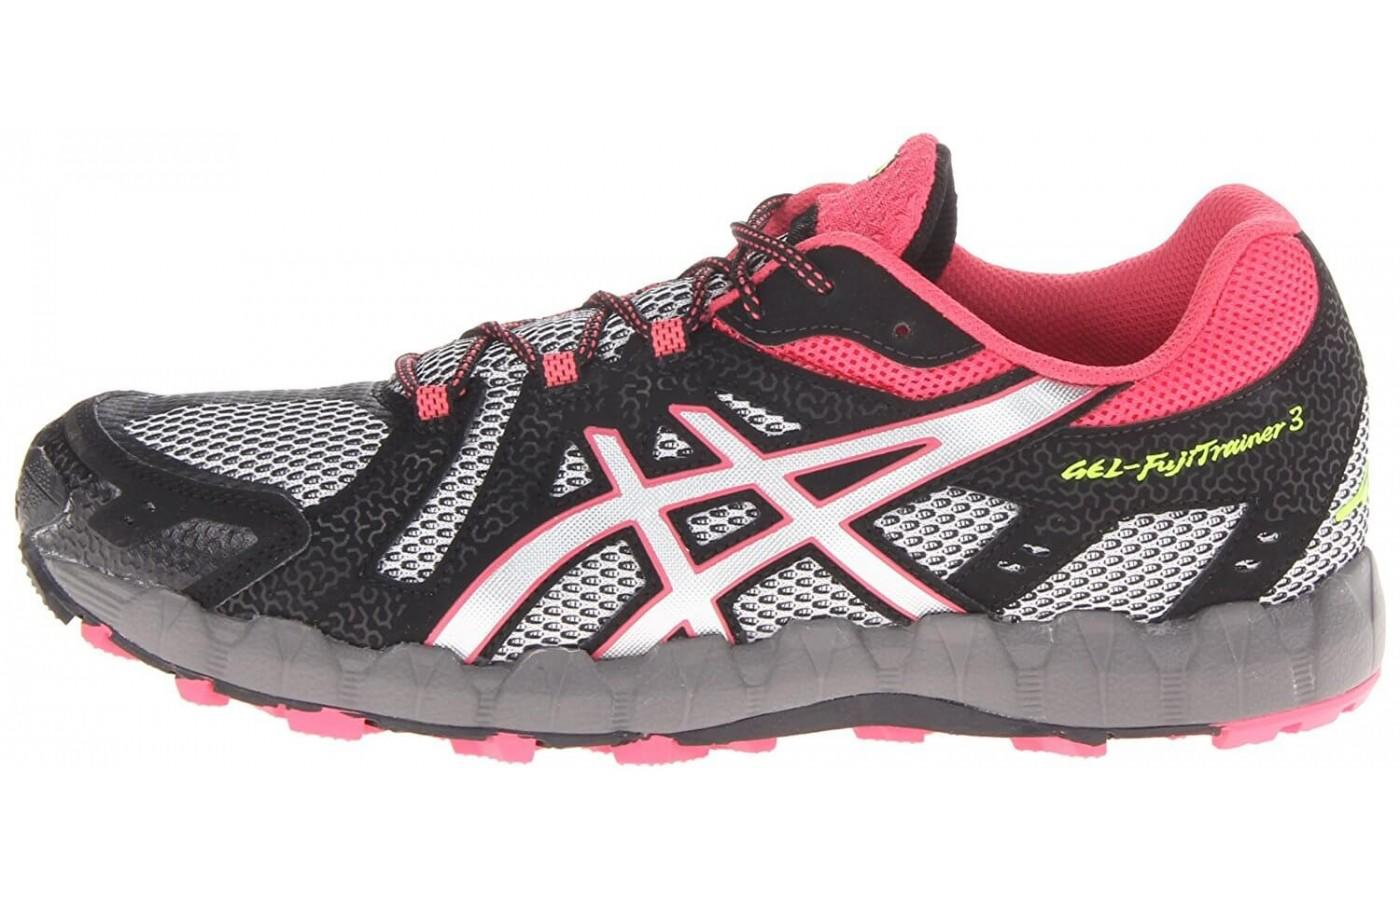 A good look at the side of the Asics Gel FujiTrainer 3